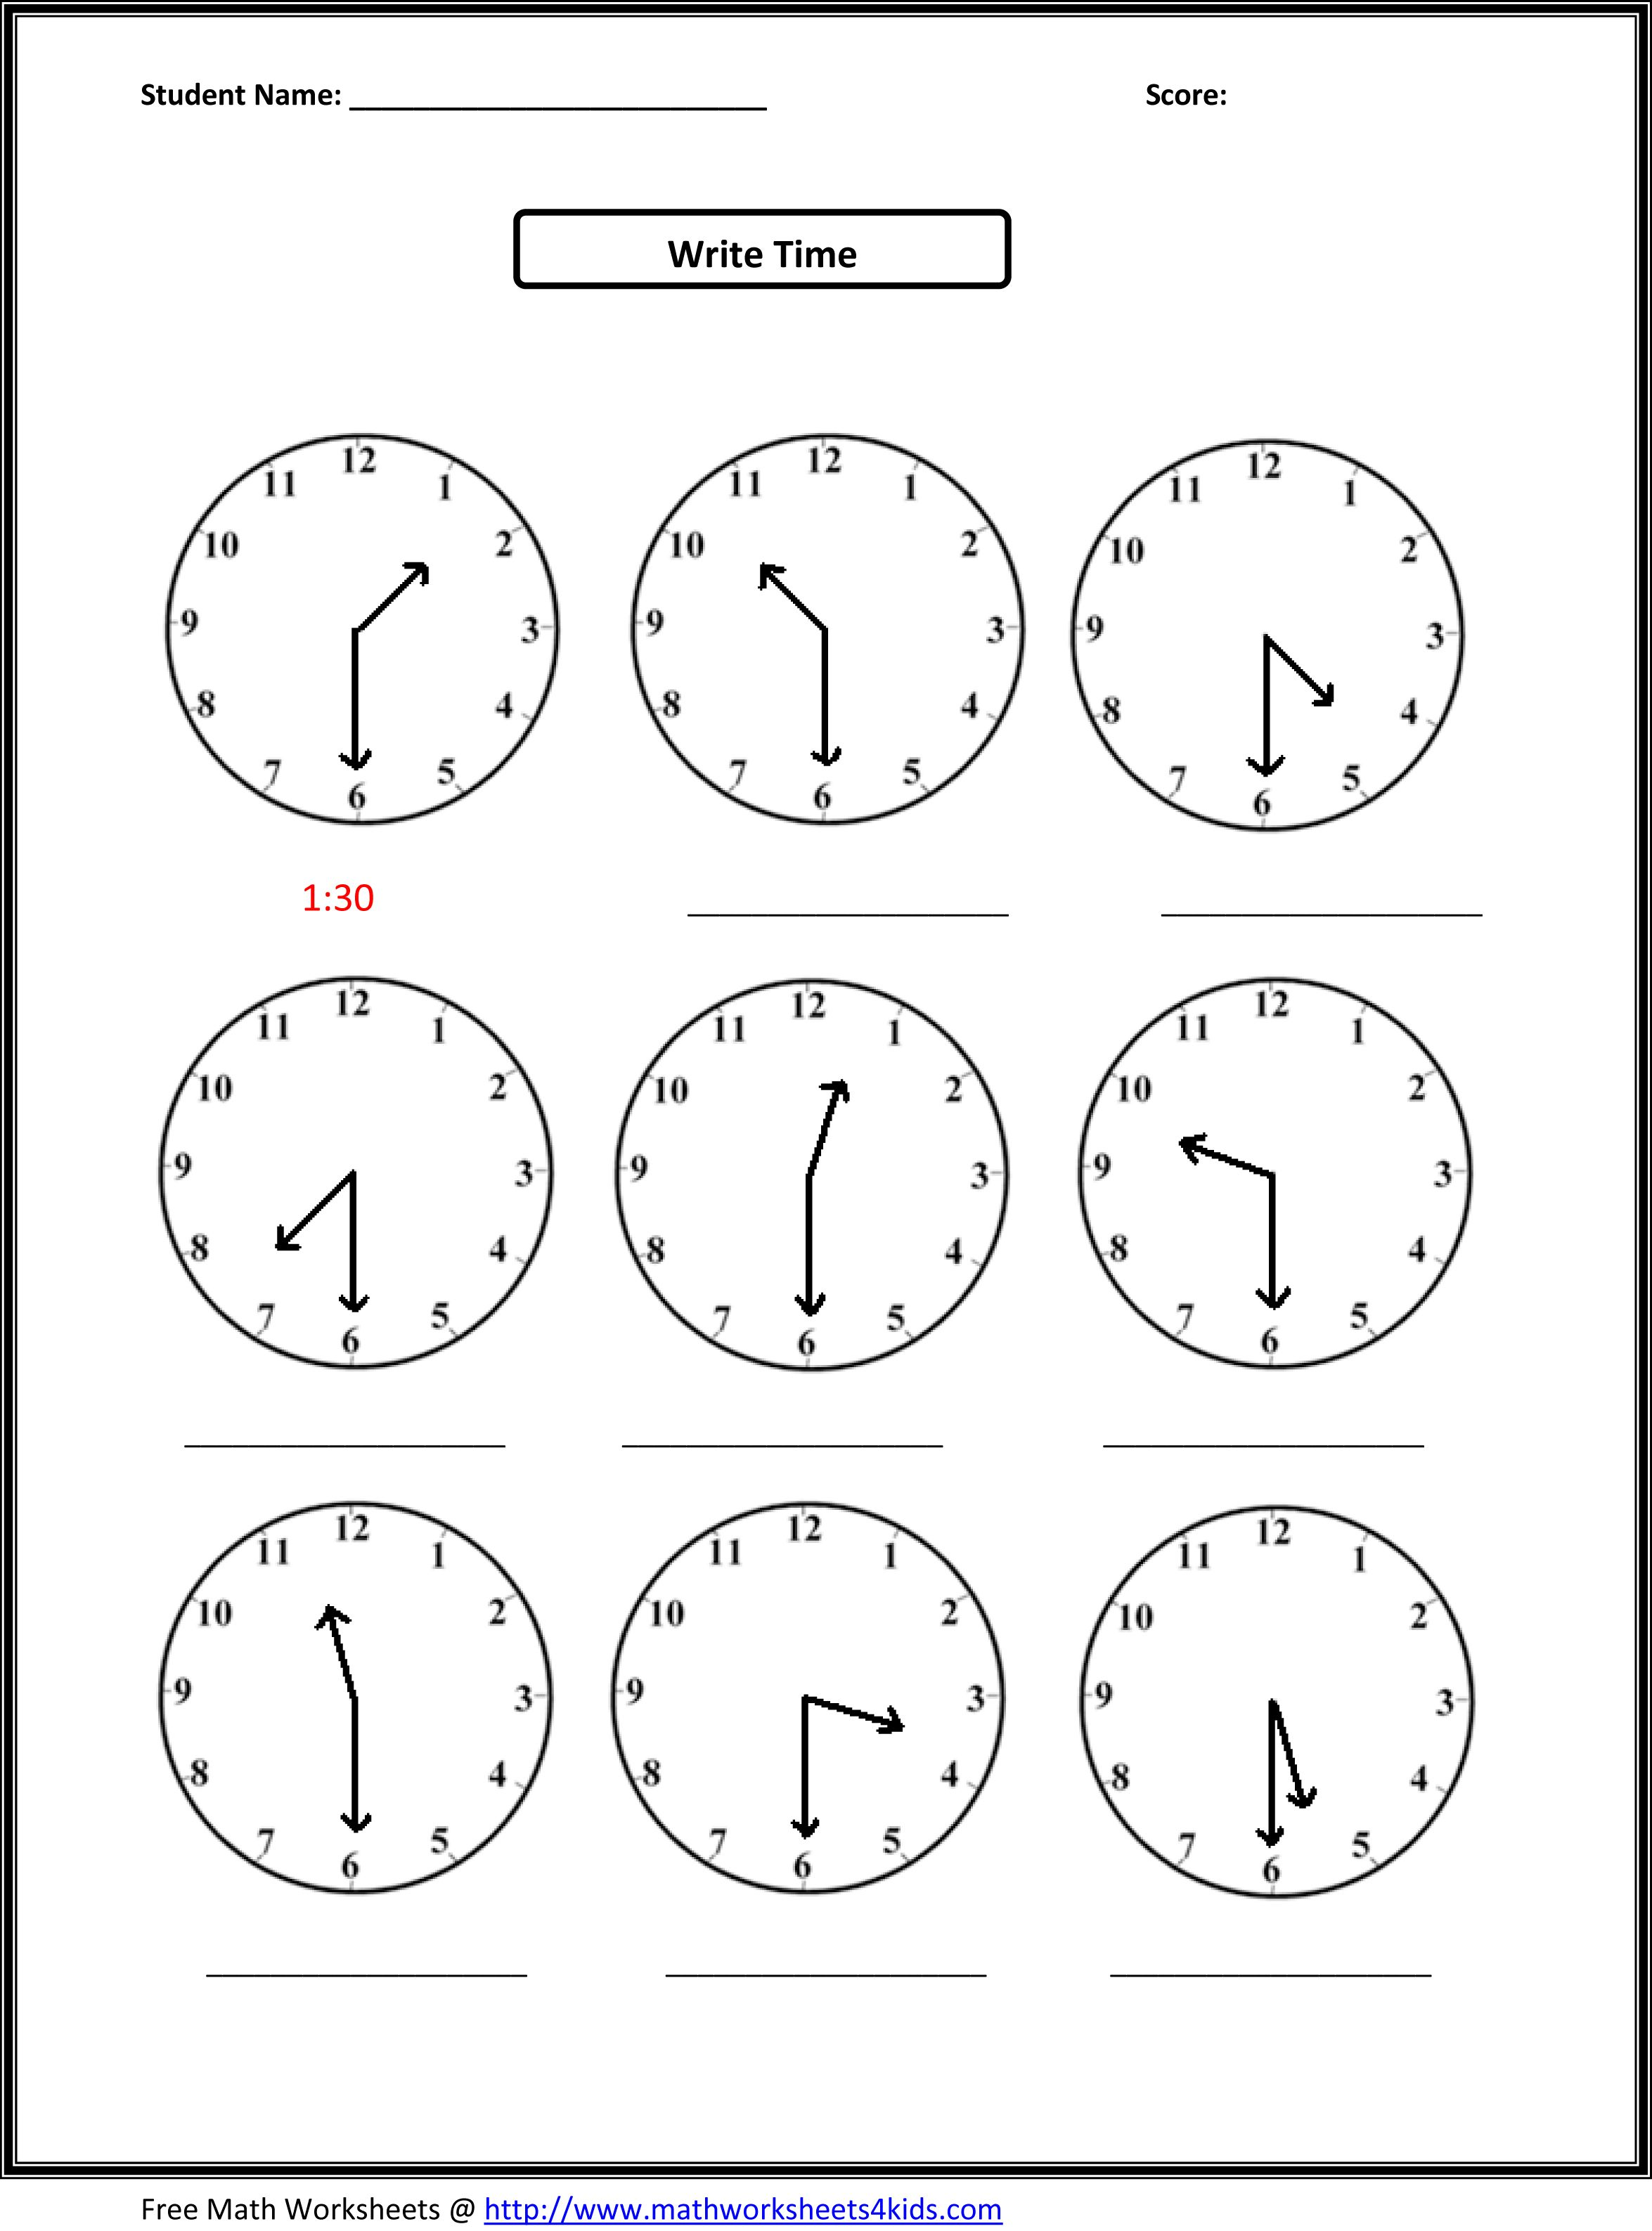 Proatmealus  Inspiring Worksheet On Time For Grade   Reocurent With Handsome Free Printable Telling Time Worksheets Nd Grade  Reocurent With Awesome Cut And Paste Letter Worksheets Also Activity Worksheets For Kindergarten In Addition Context Clues Worksheets For Th Grade And Super Teacher Worksheets Long Division As Well As More Than And Less Than Worksheets Additionally Monster High Worksheets From Reocurentcom With Proatmealus  Handsome Worksheet On Time For Grade   Reocurent With Awesome Free Printable Telling Time Worksheets Nd Grade  Reocurent And Inspiring Cut And Paste Letter Worksheets Also Activity Worksheets For Kindergarten In Addition Context Clues Worksheets For Th Grade From Reocurentcom